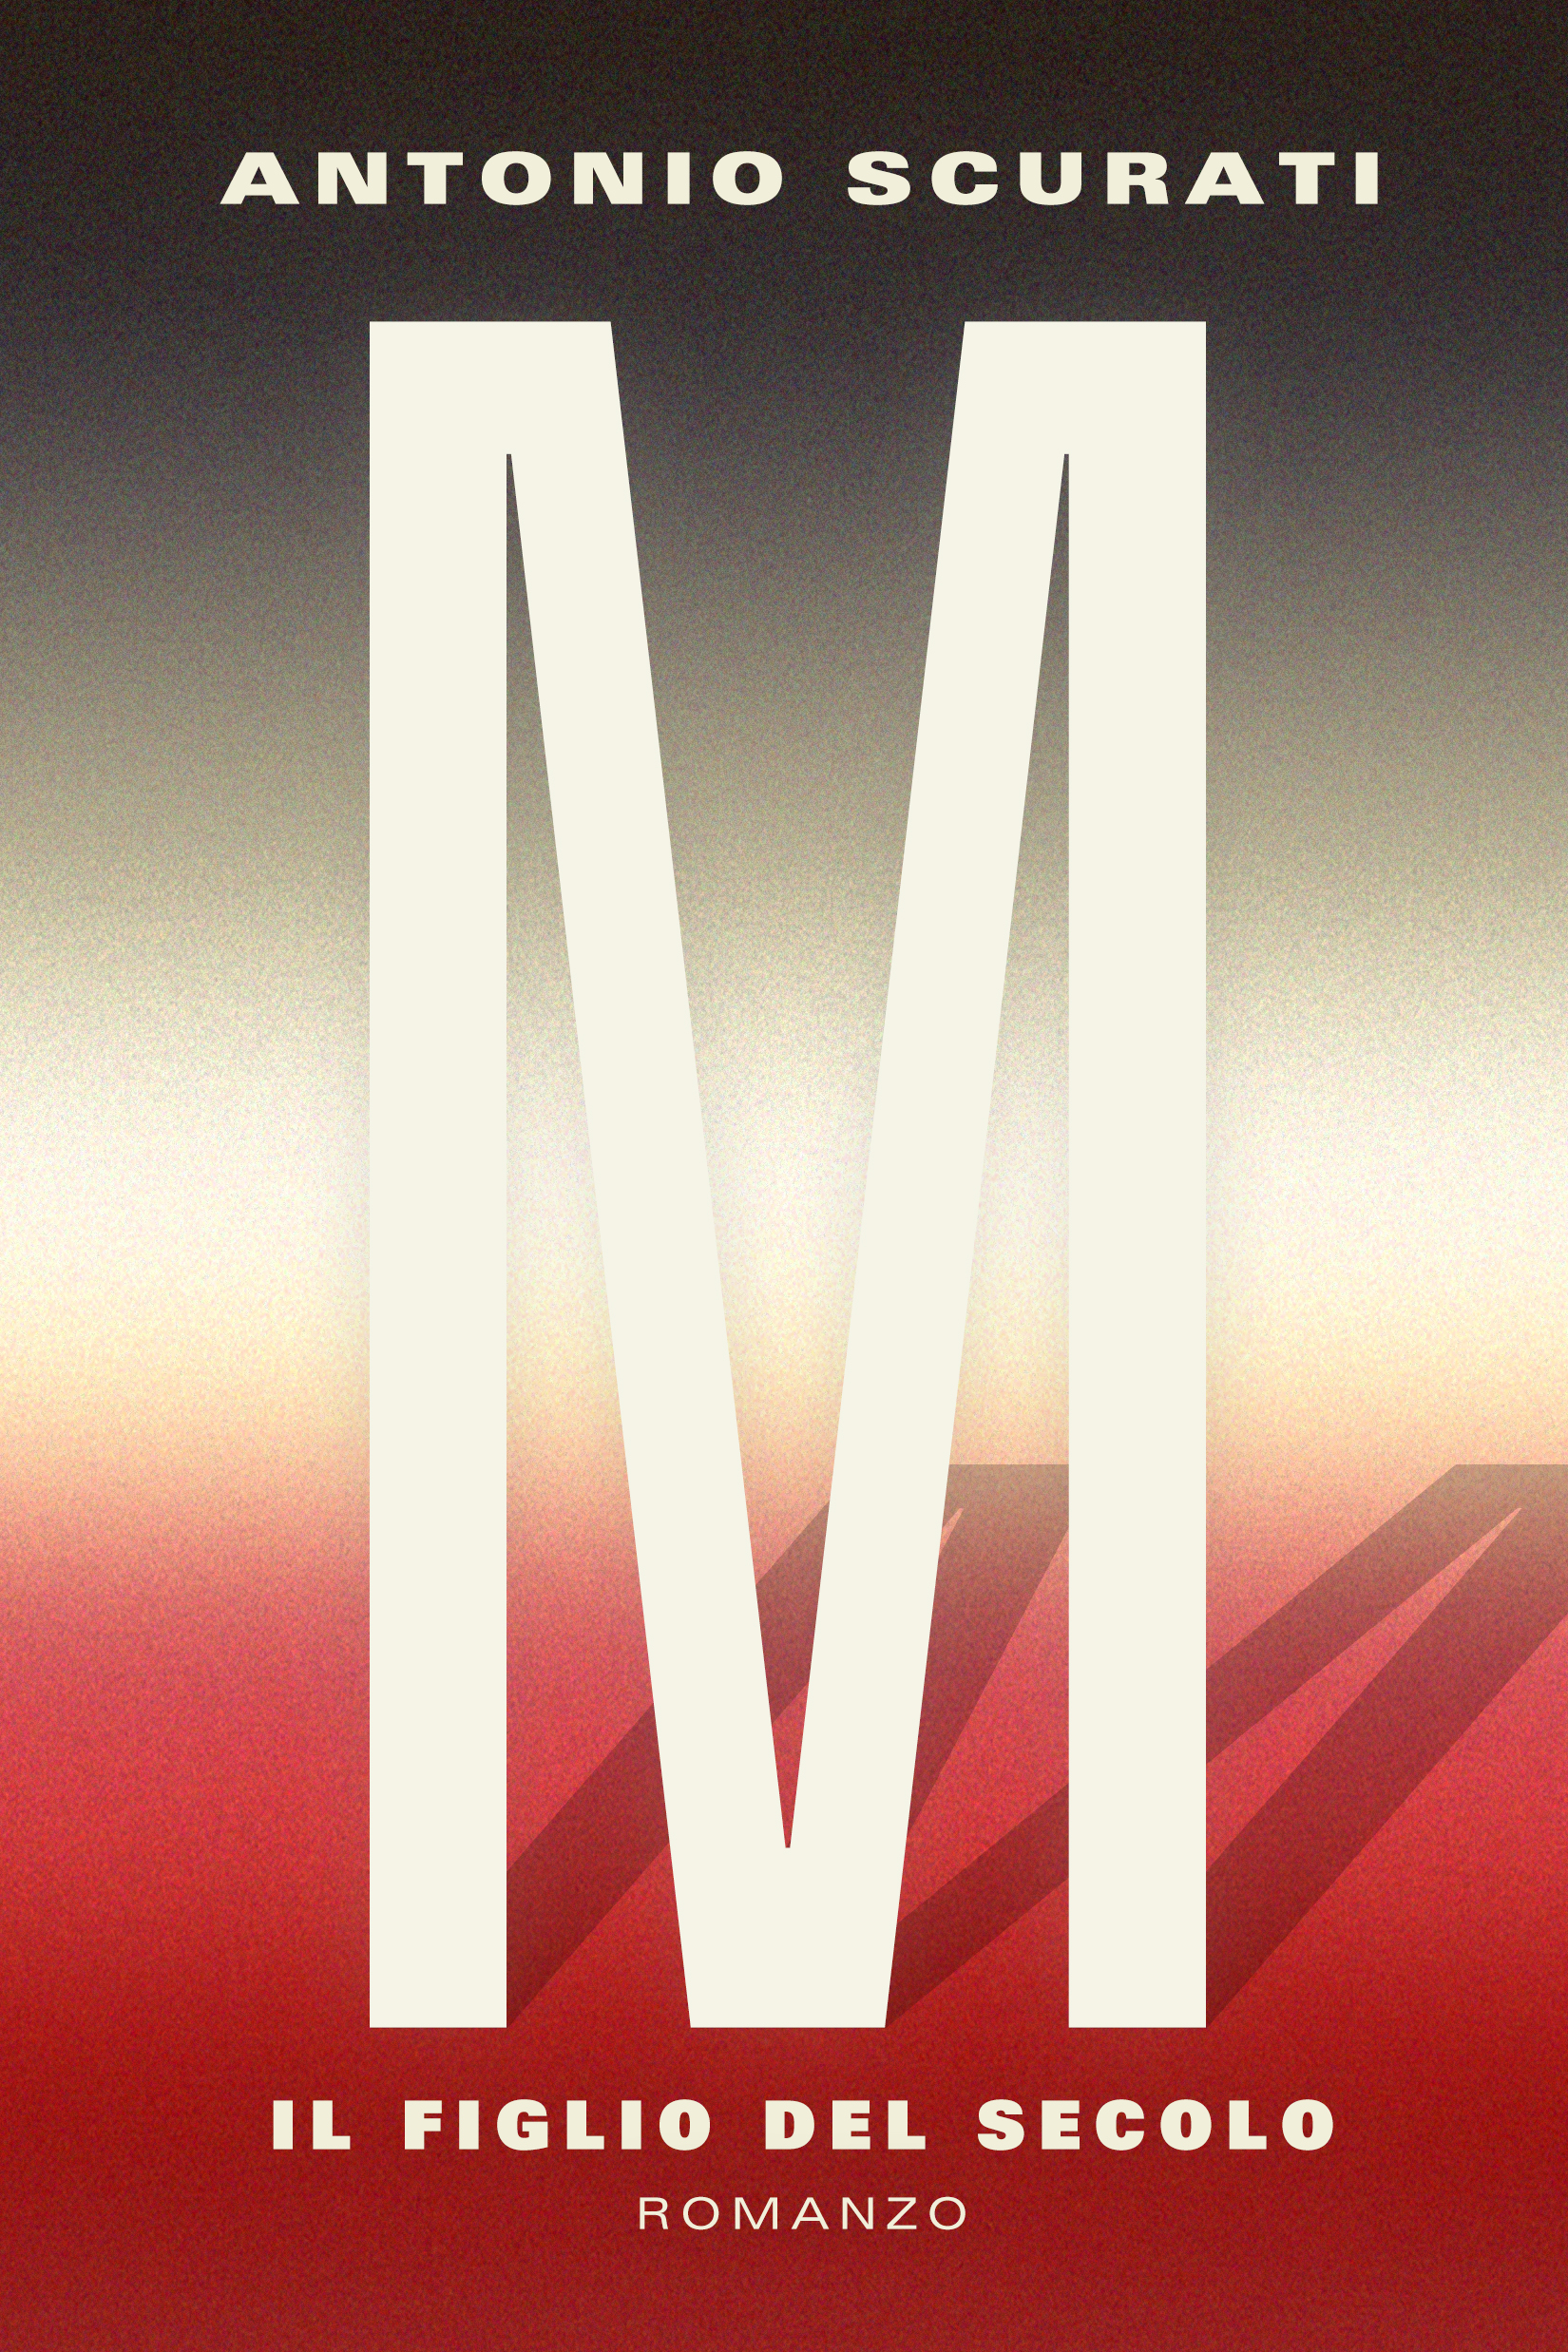 M by Antonio Scurati Designed by Ben Mautner for One Hour Covers